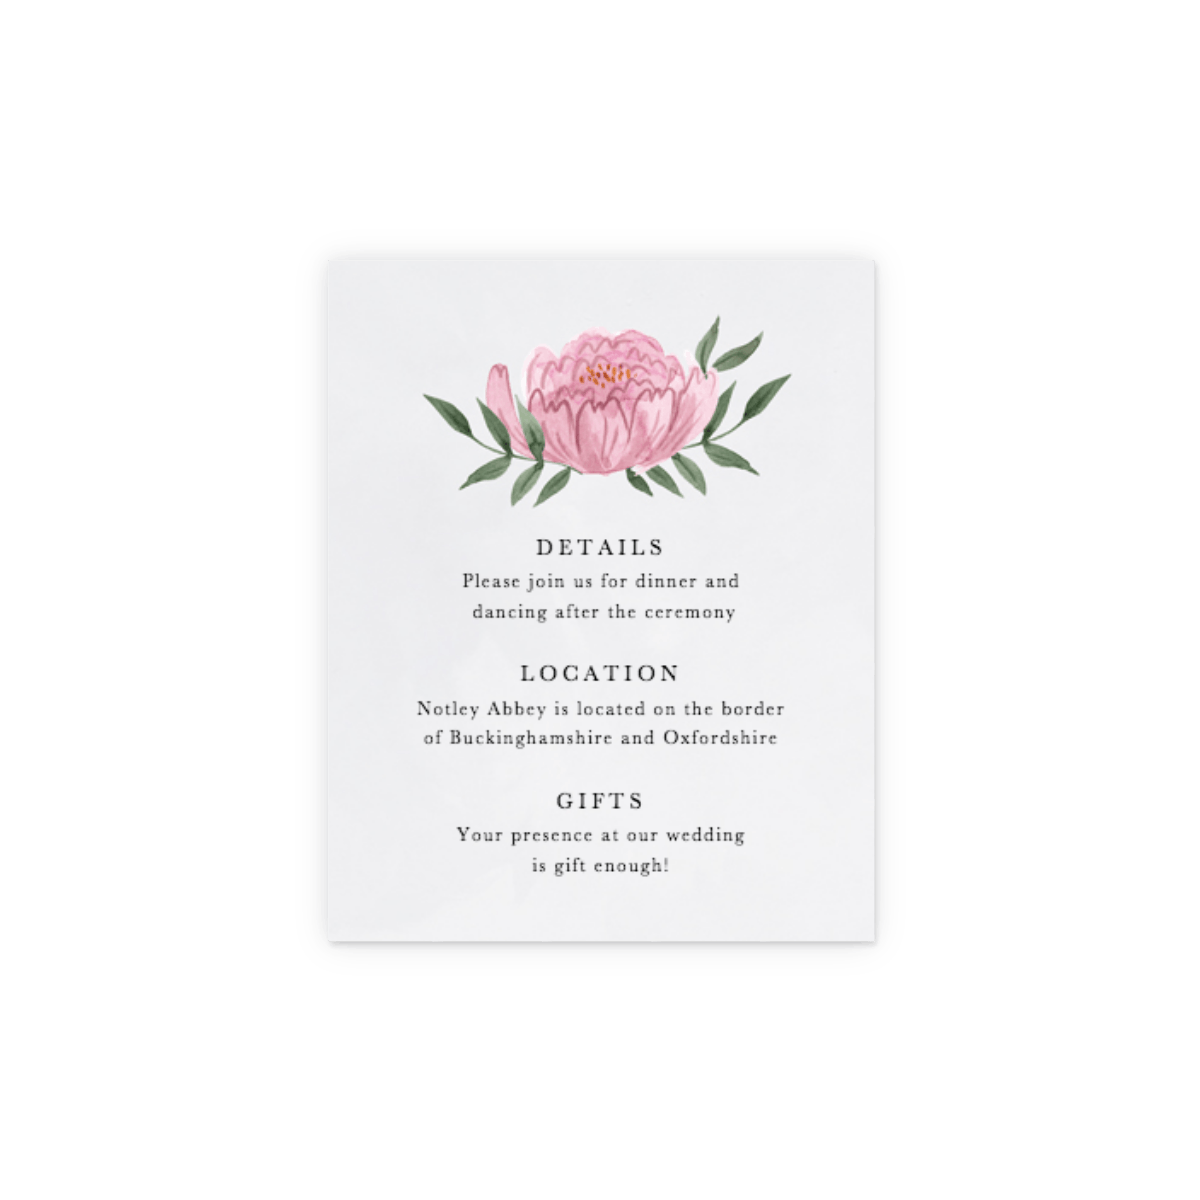 Https%3a%2f%2fwww.papier.com%2fproduct image%2f62958%2f9%2fdusky peonies 14859 info card 1549639340.png?ixlib=rb 1.1